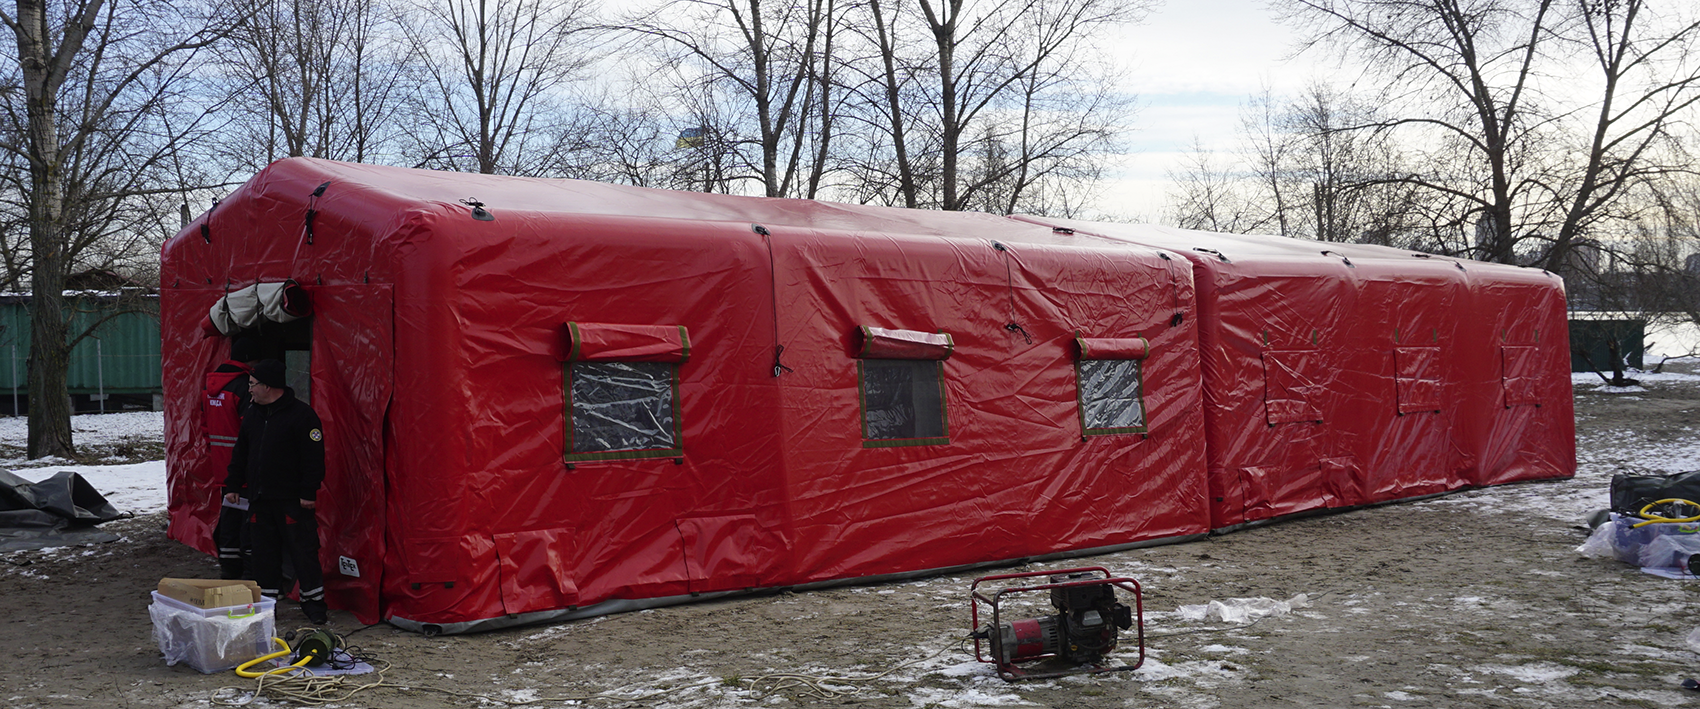 Inflatable airframe tents with interconnection system for Kyiv Rescue Service